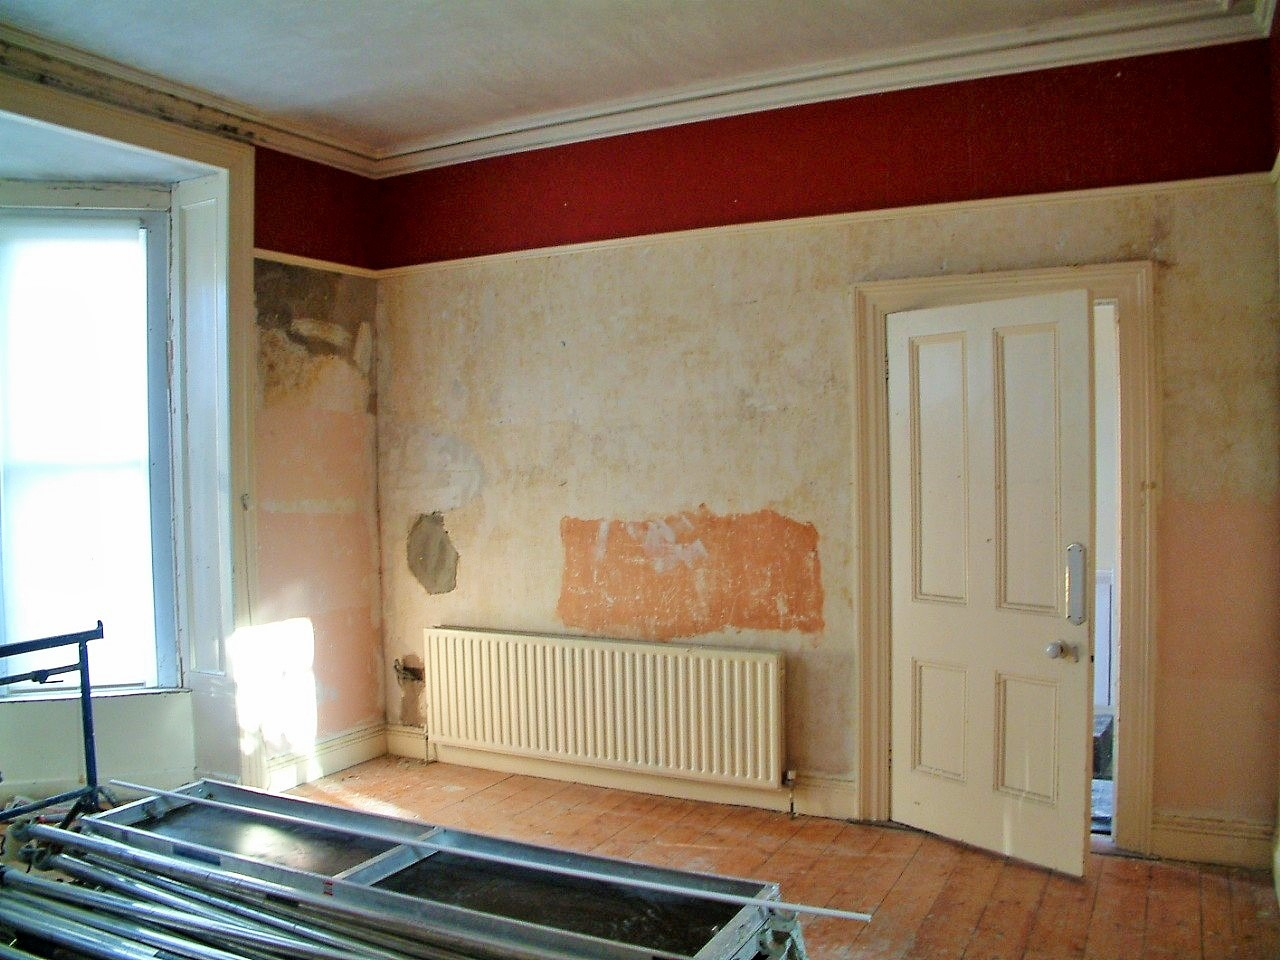 How to strip wallpaper blog by Impressions Painters and Decorators before photo